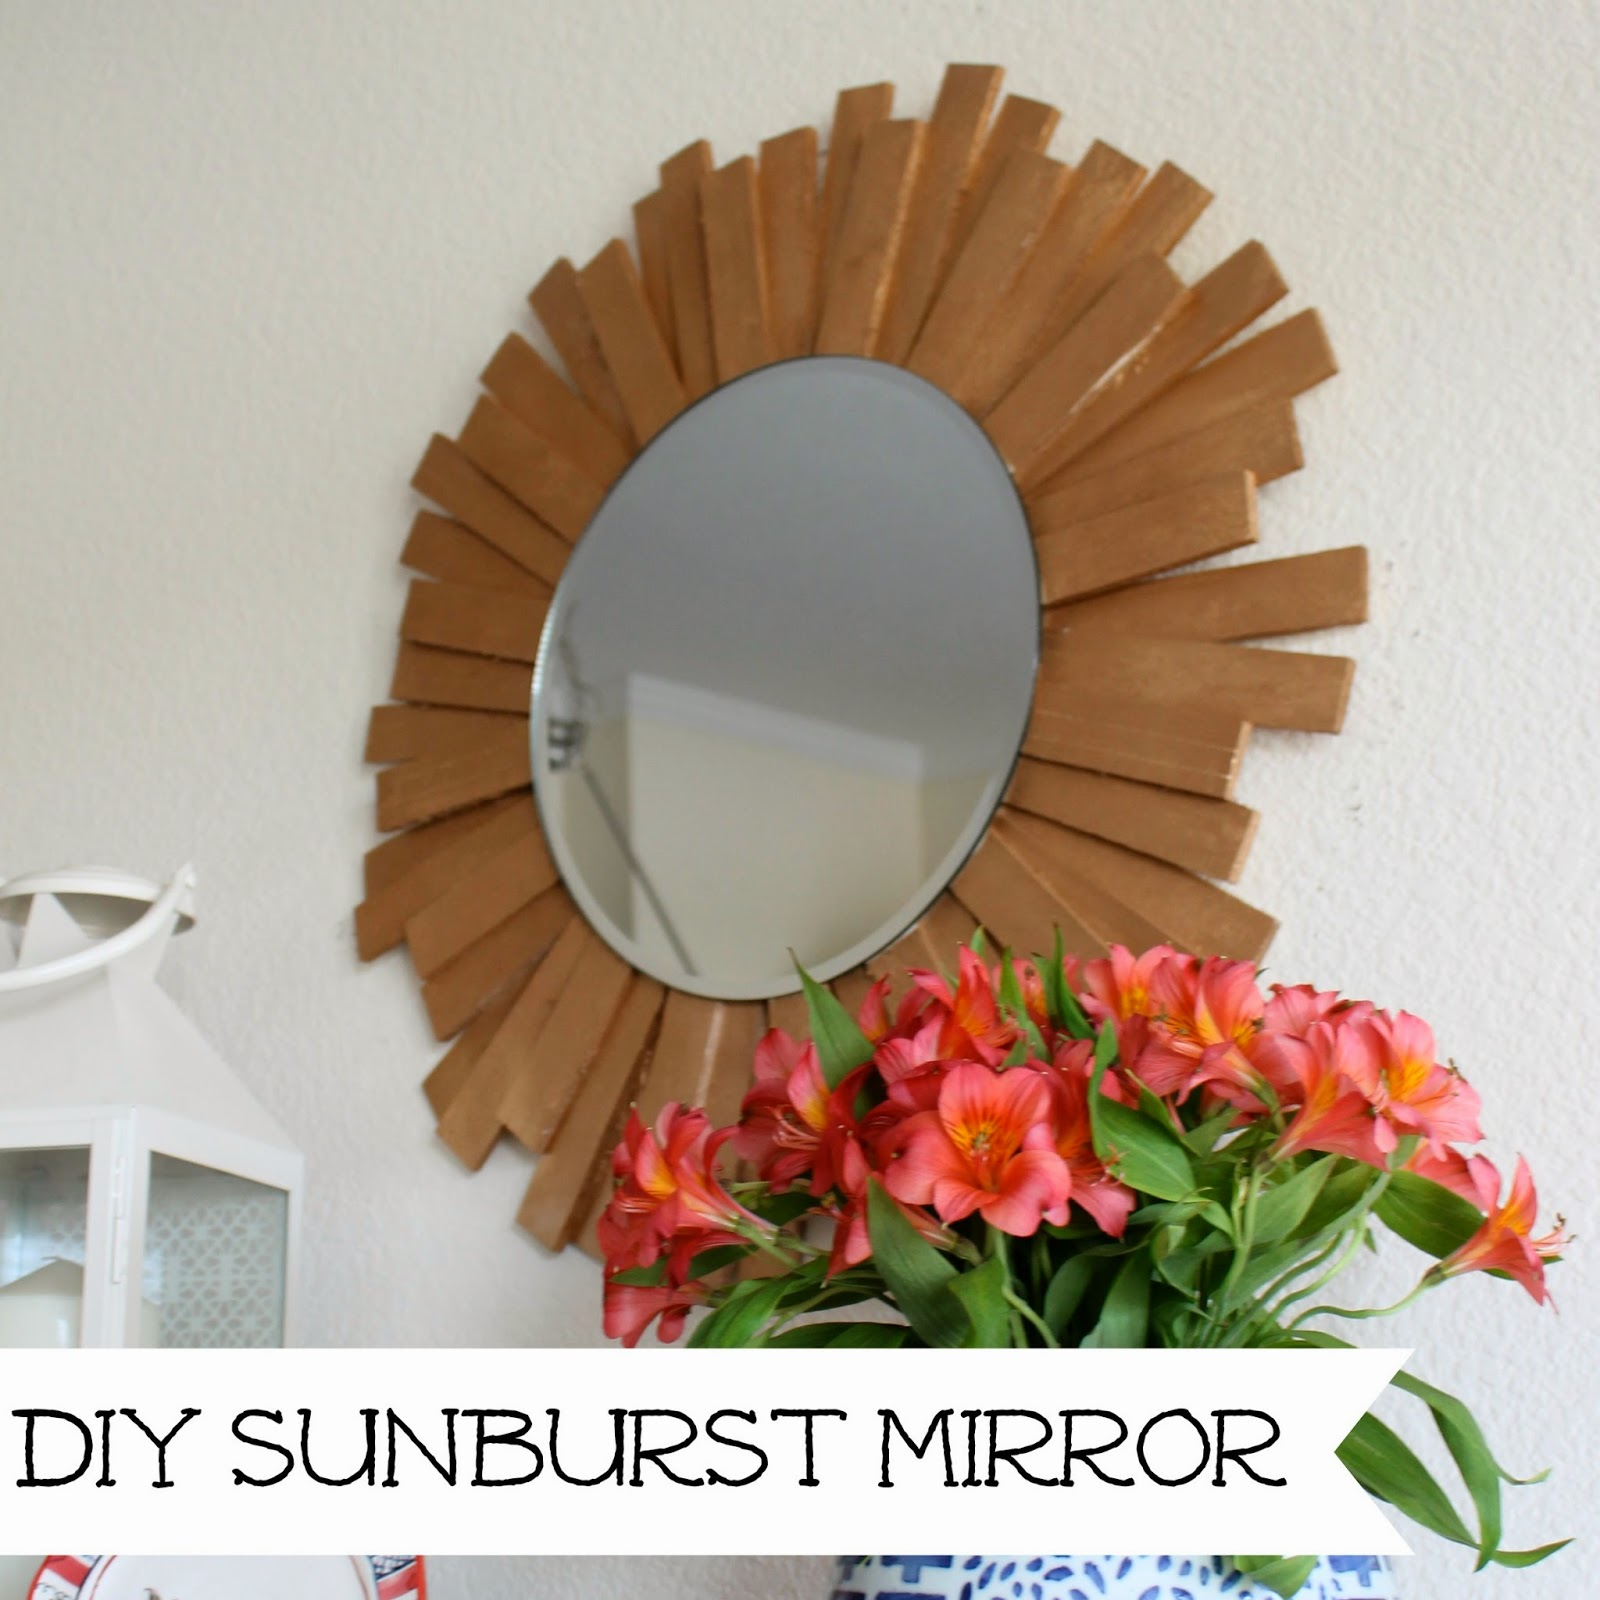 http://wonderfullymadebyleslie.blogspot.com/2014/06/diy-sunburst-mirror.html